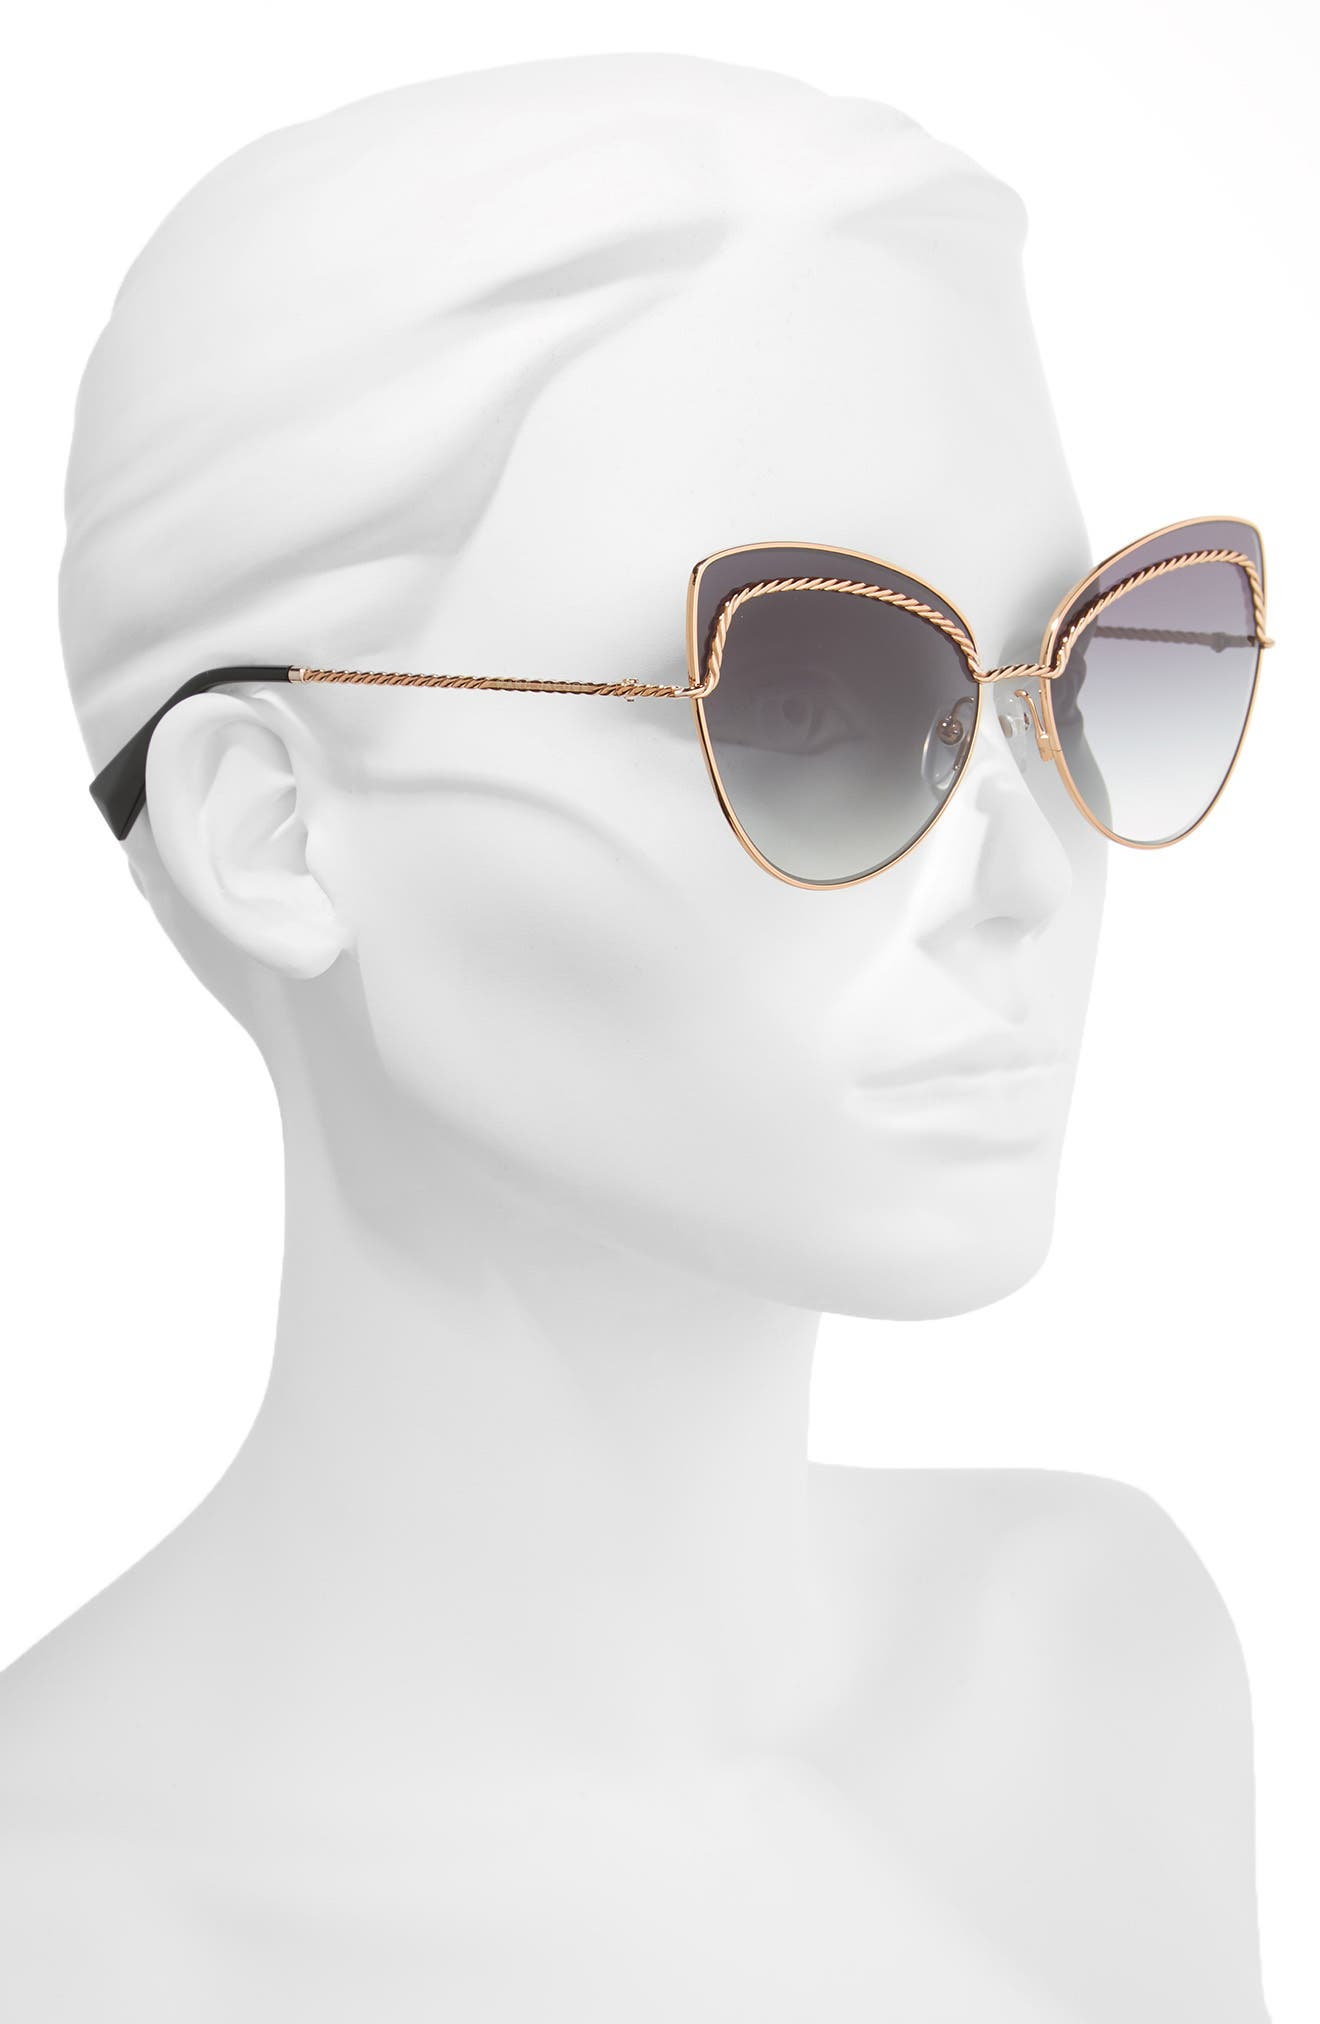 61mm Butterfly Sunglasses,                             Alternate thumbnail 3, color,